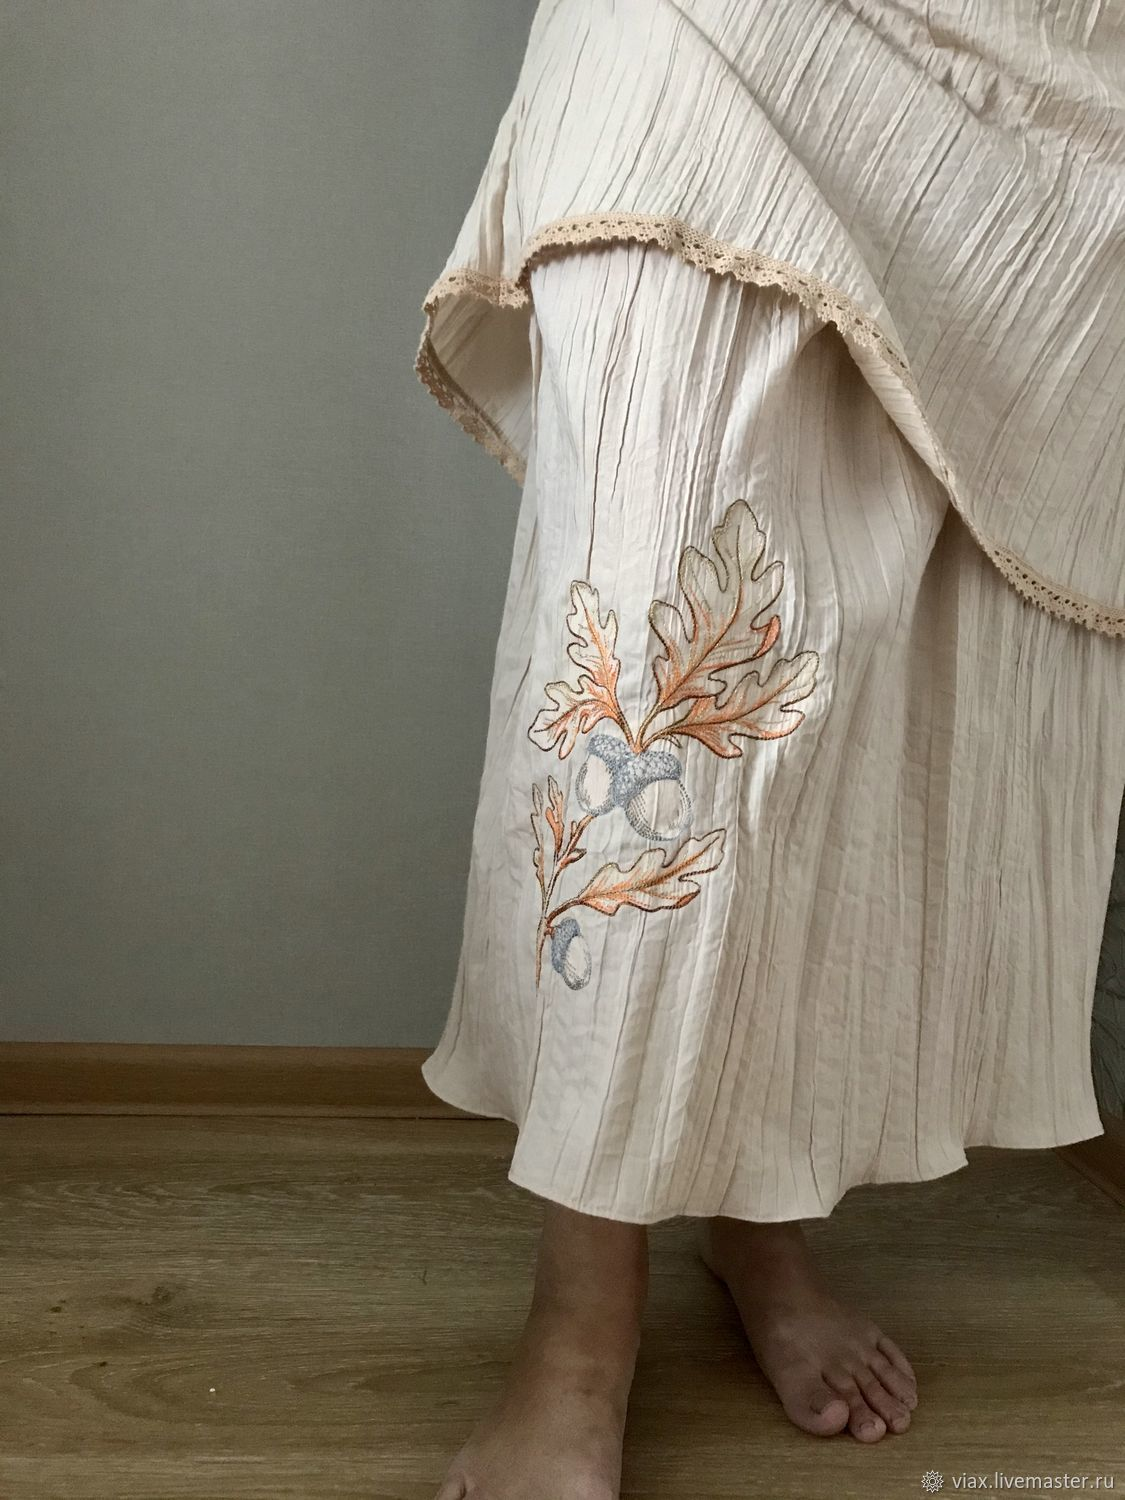 the bottom bunk boho Skirt with embroidered 'Dubcek», Skirts, Rostov-on-Don,  Фото №1